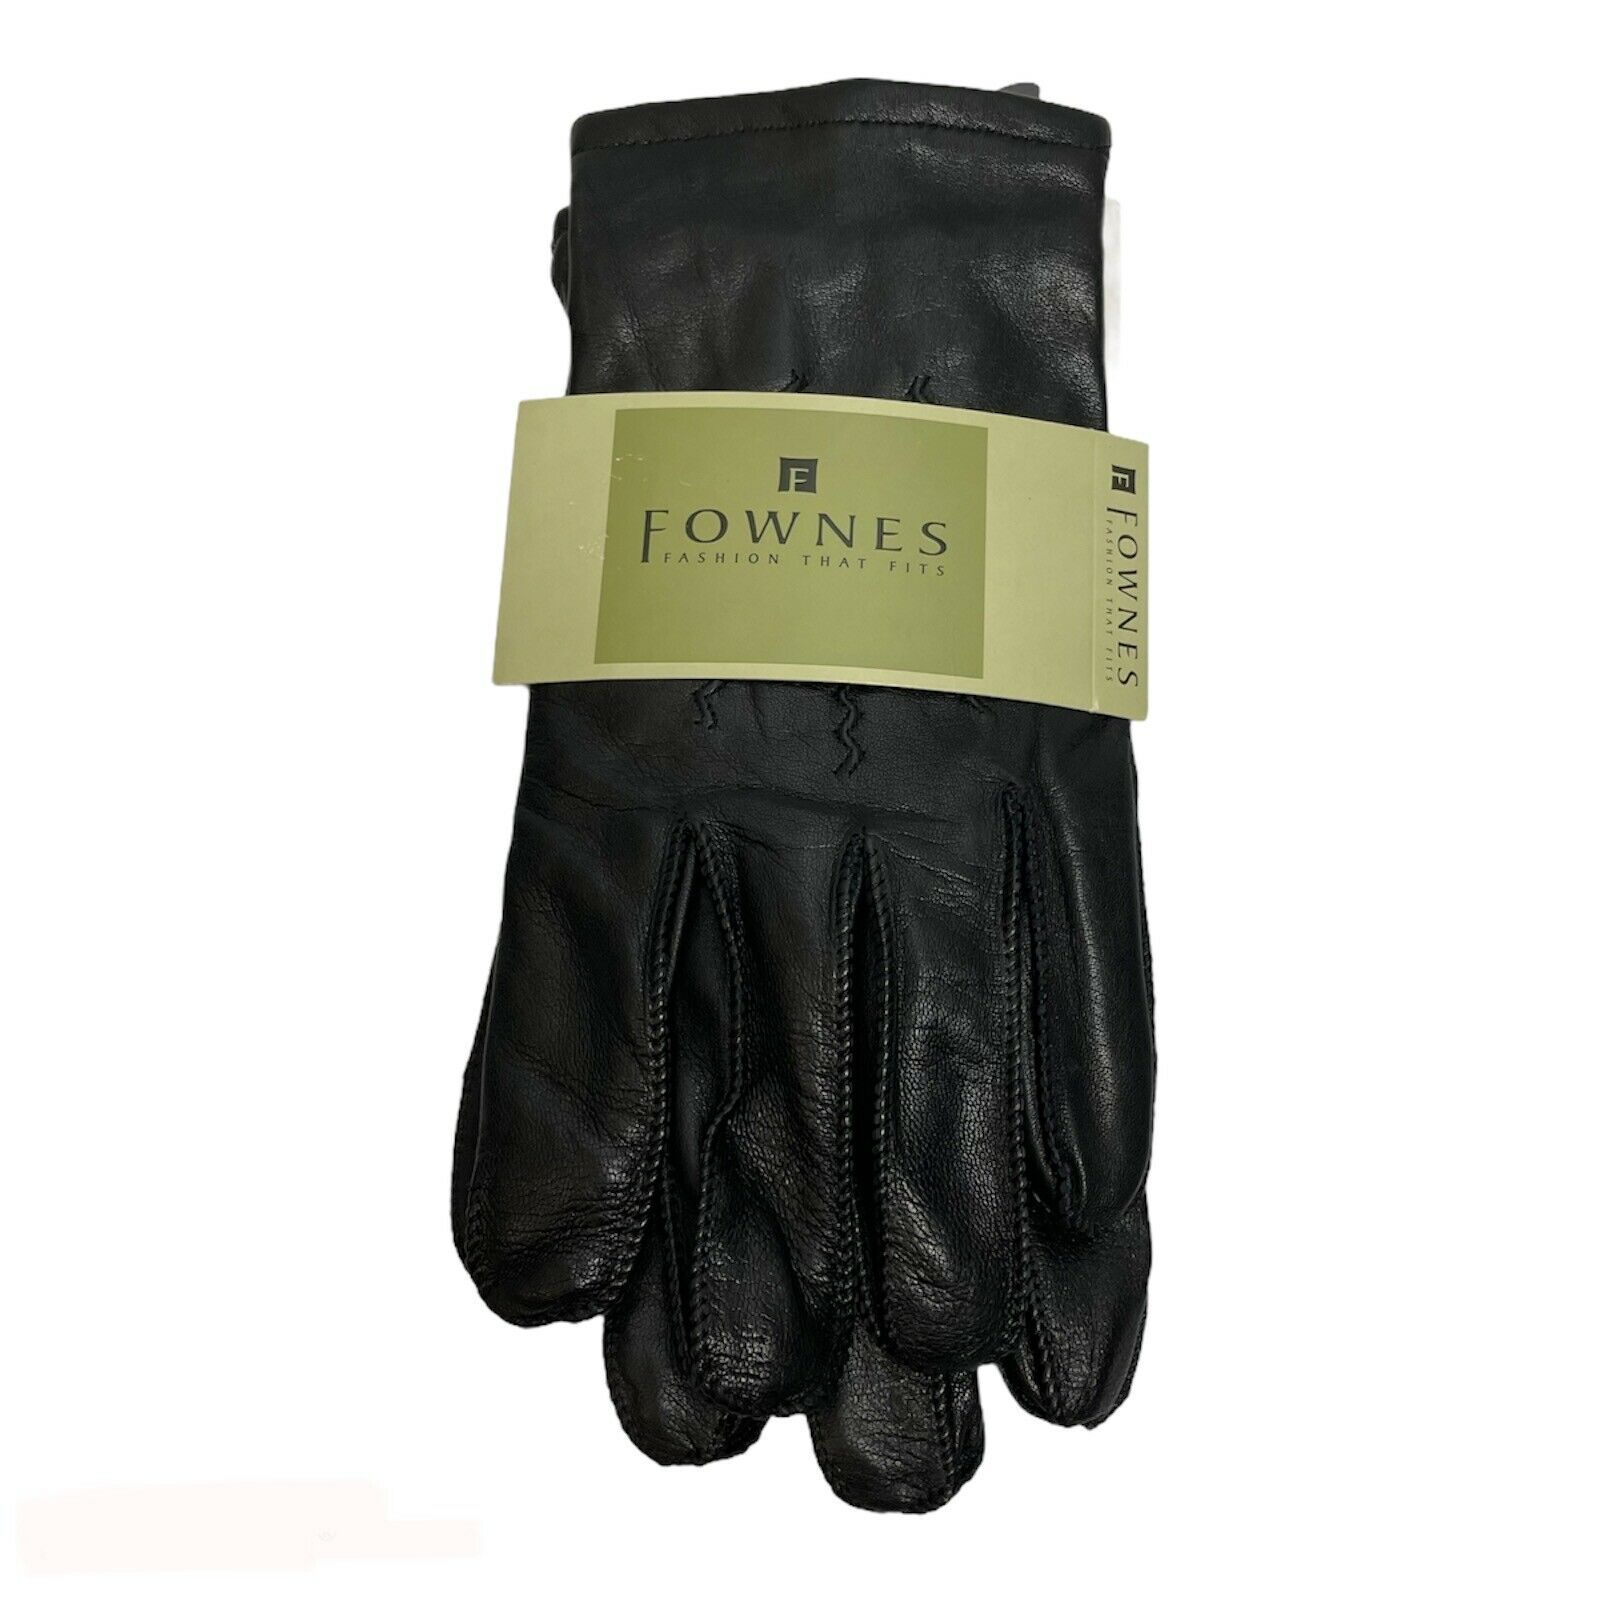 Fownes Men's Leather Gloves Black Sz Medium Wool Cashmere Nylon Lined 1843 New